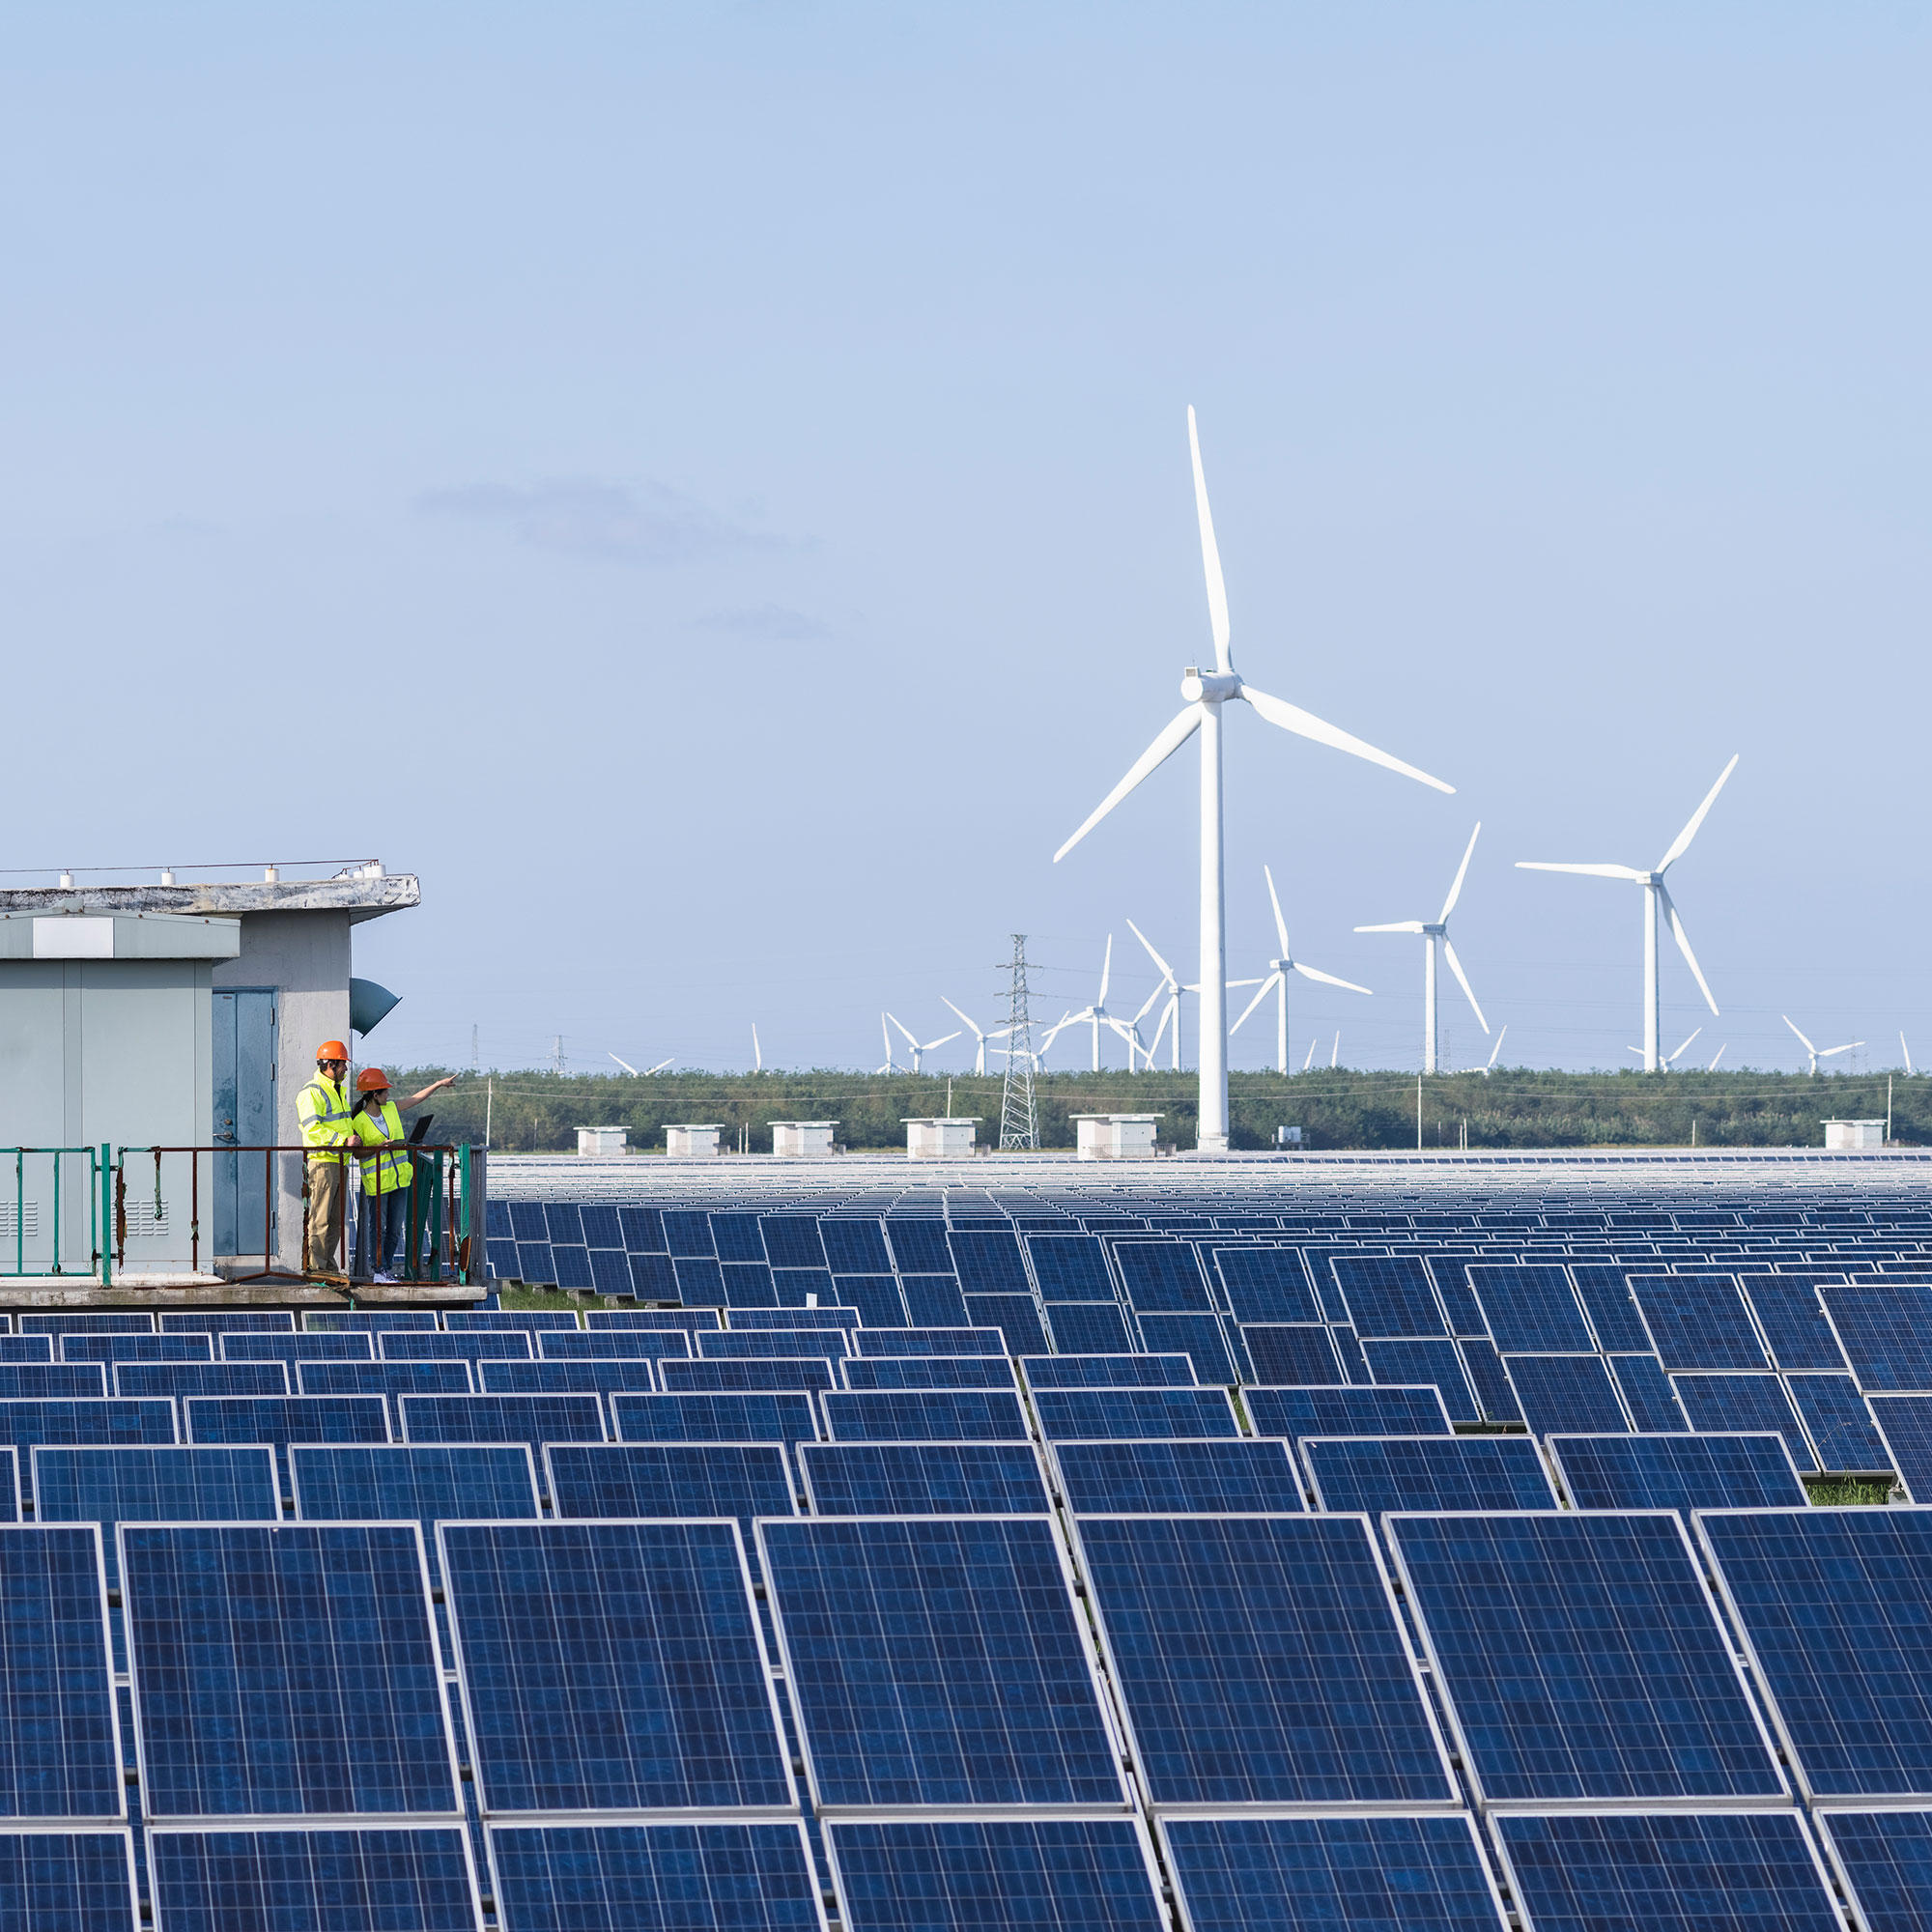 energy_wechselrichter_solar_windkraft_gettyimages-522921291_2000x2000.jpg